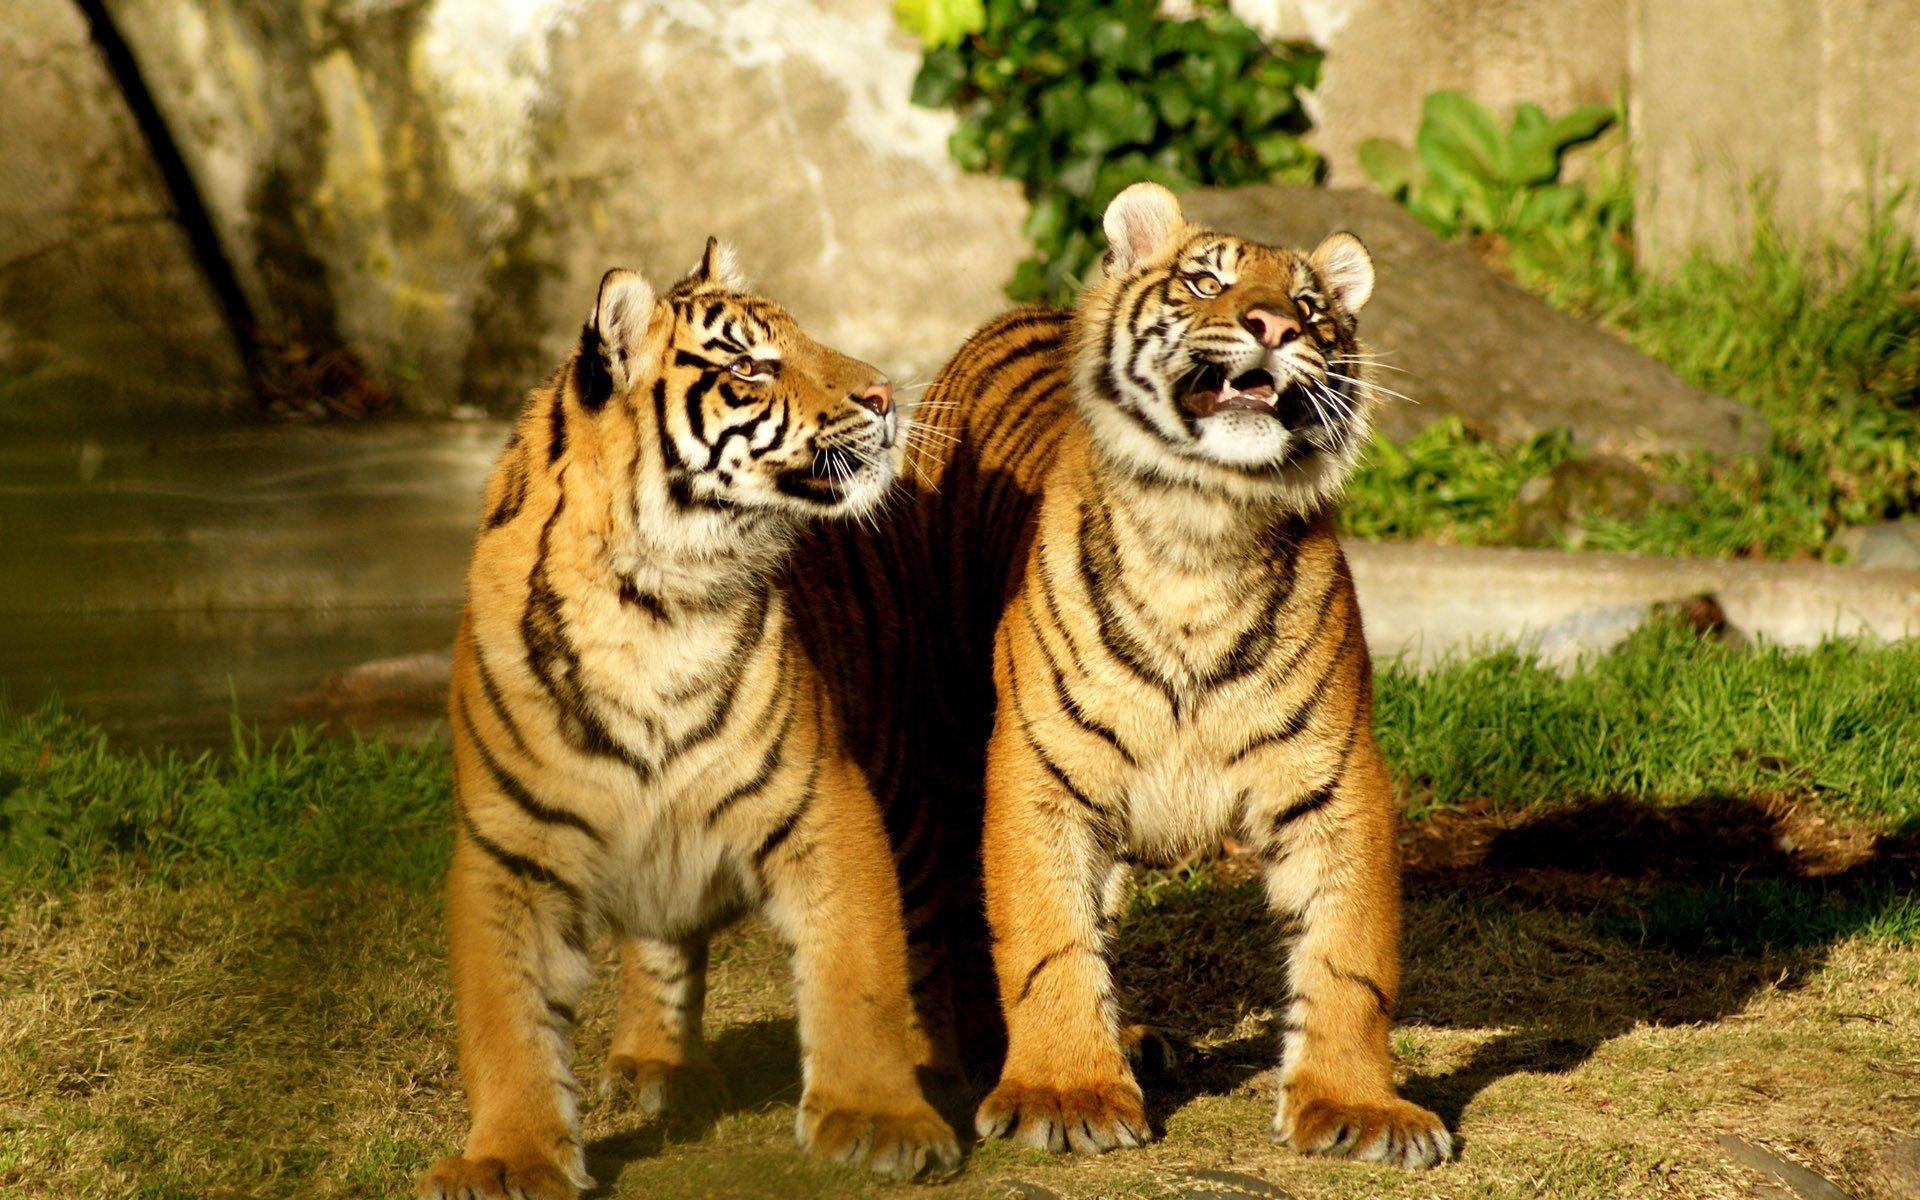 Two Tigers, Nice Wallpaper